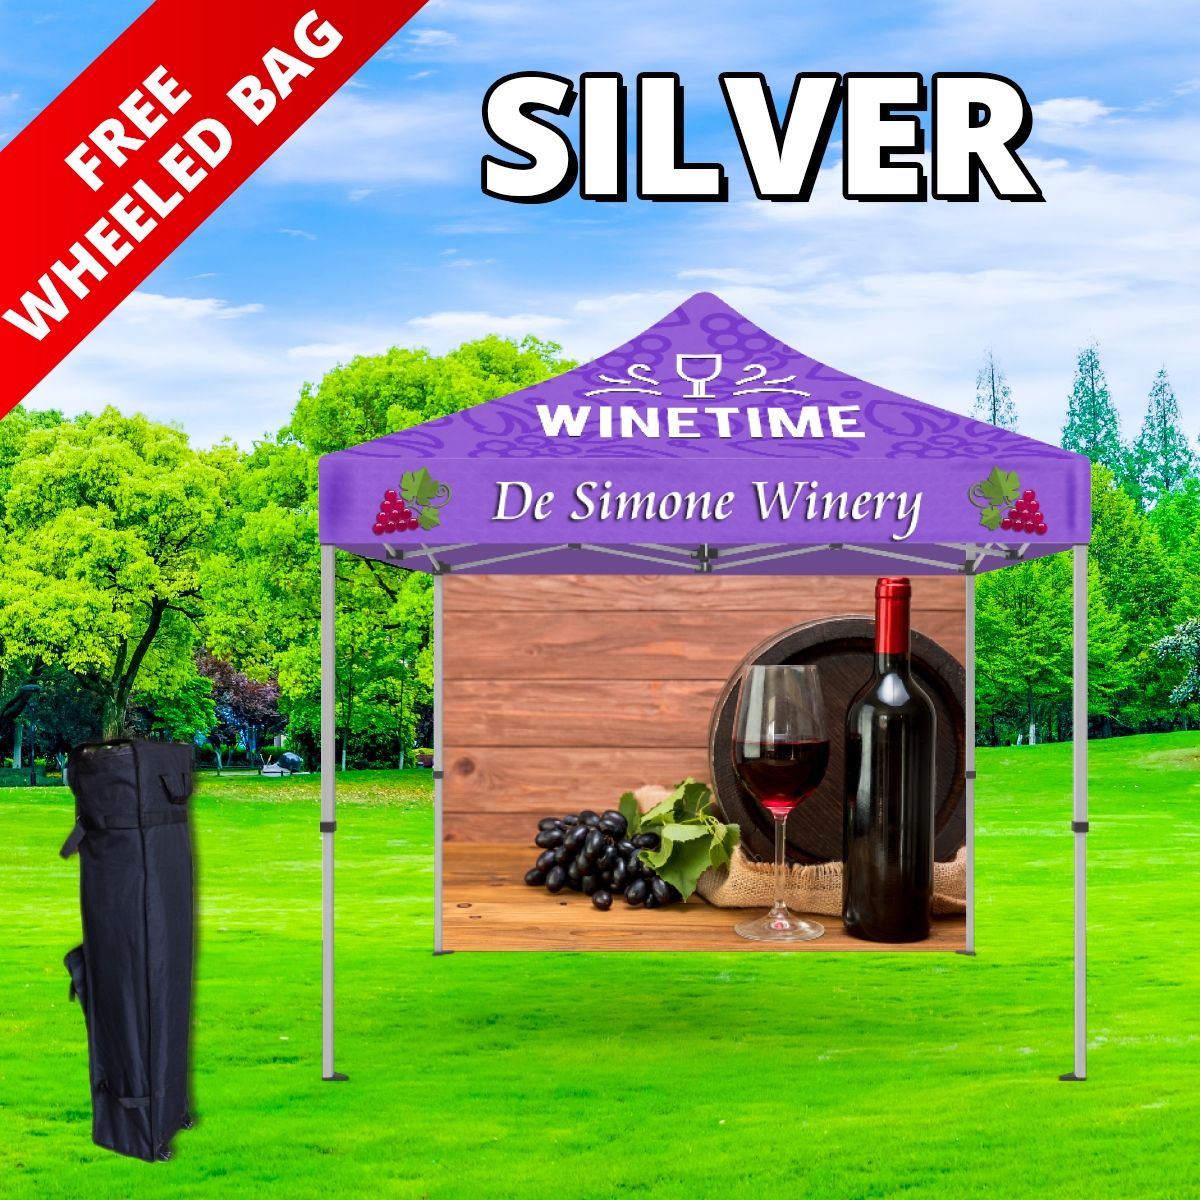 Silver Tier Event Package - 10Ft. Steel Tent with Full Color Dye Sublimated (1) Canopy, (1) Back Wall (1) Free Wheeled Bag